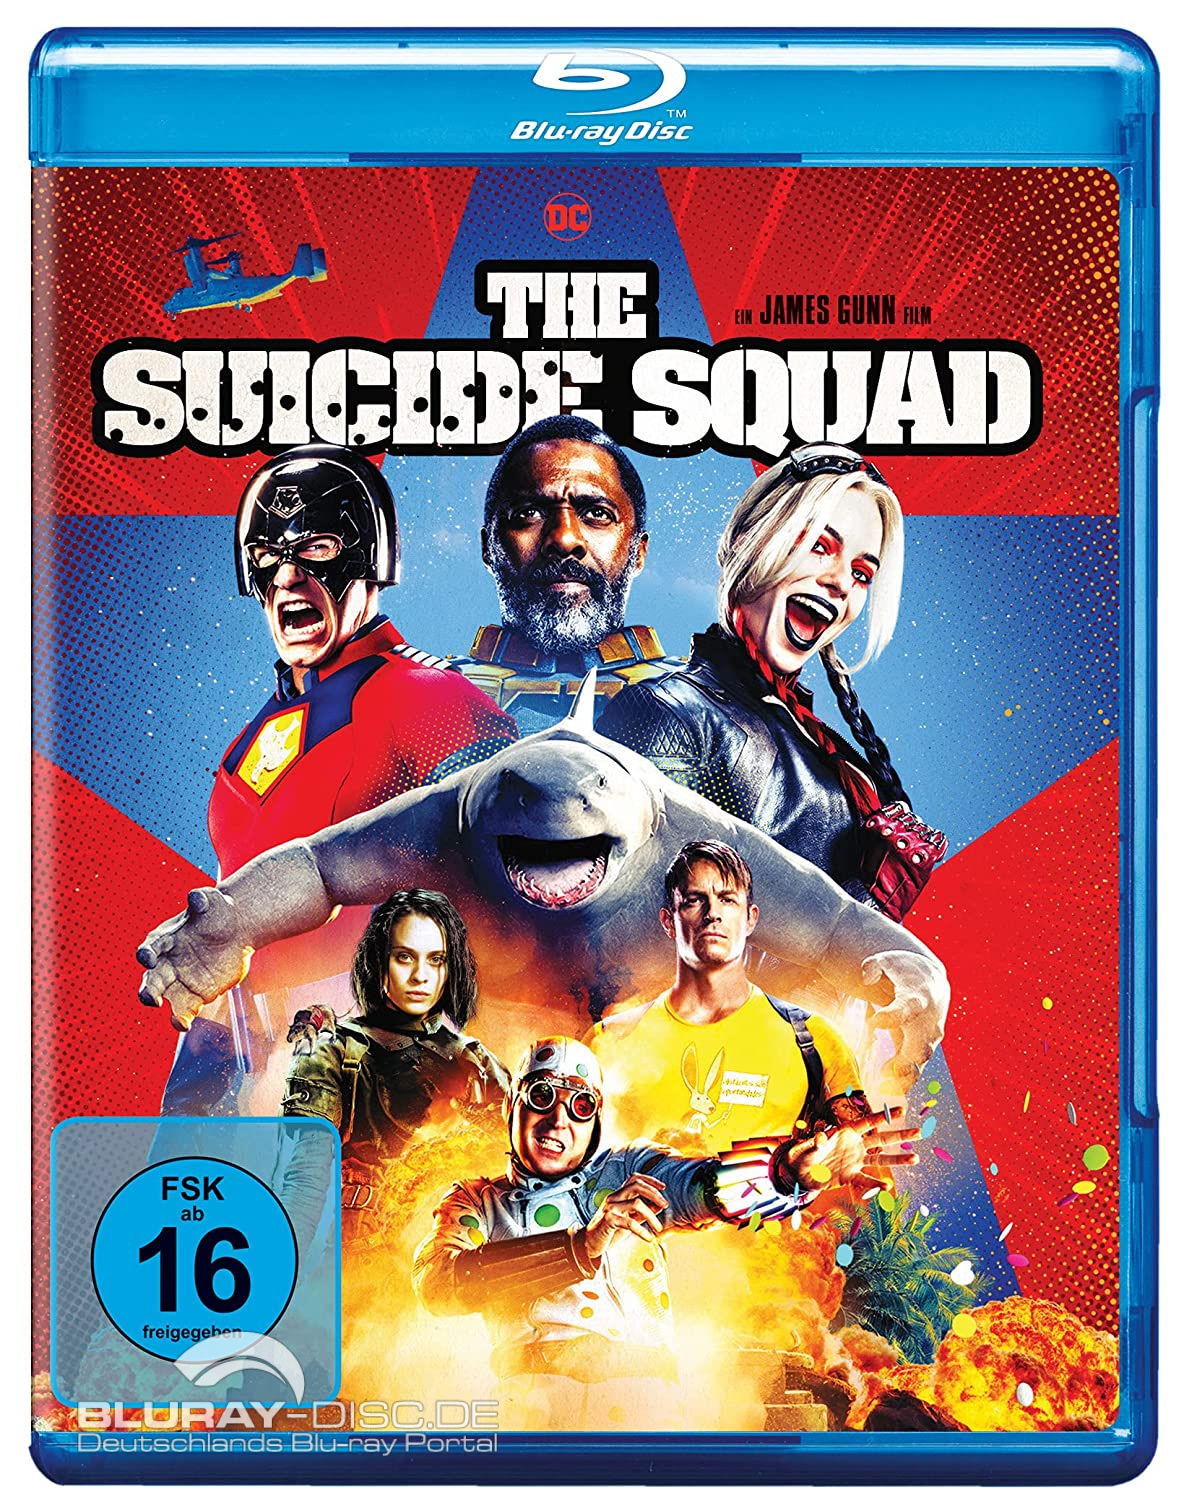 The_Suicide_Squad_Galerie_HD_Amaray_01.jpg